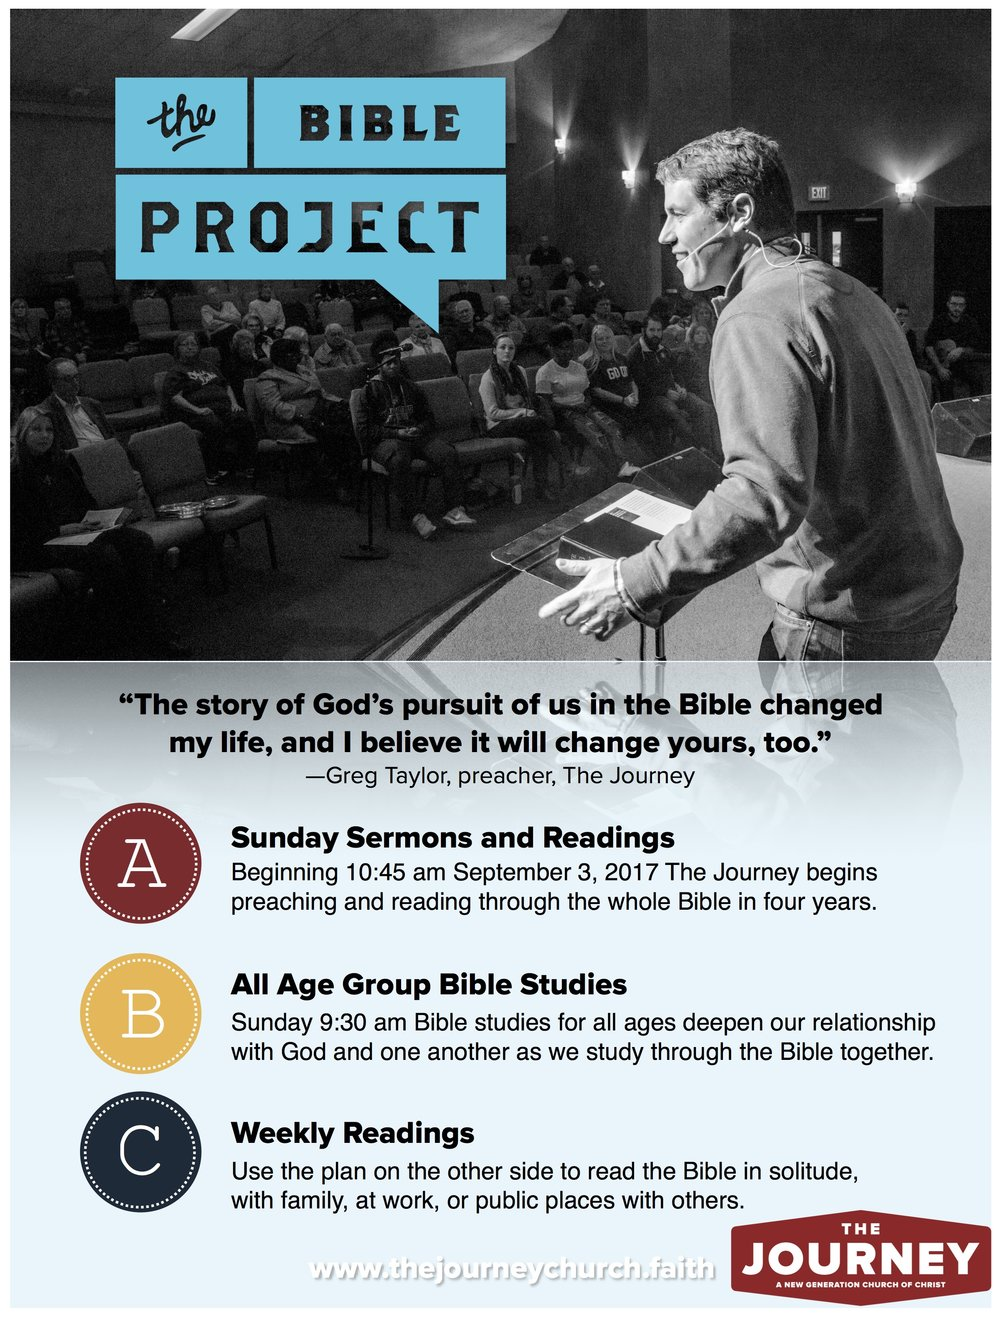 Bible Project handout page 2.jpg